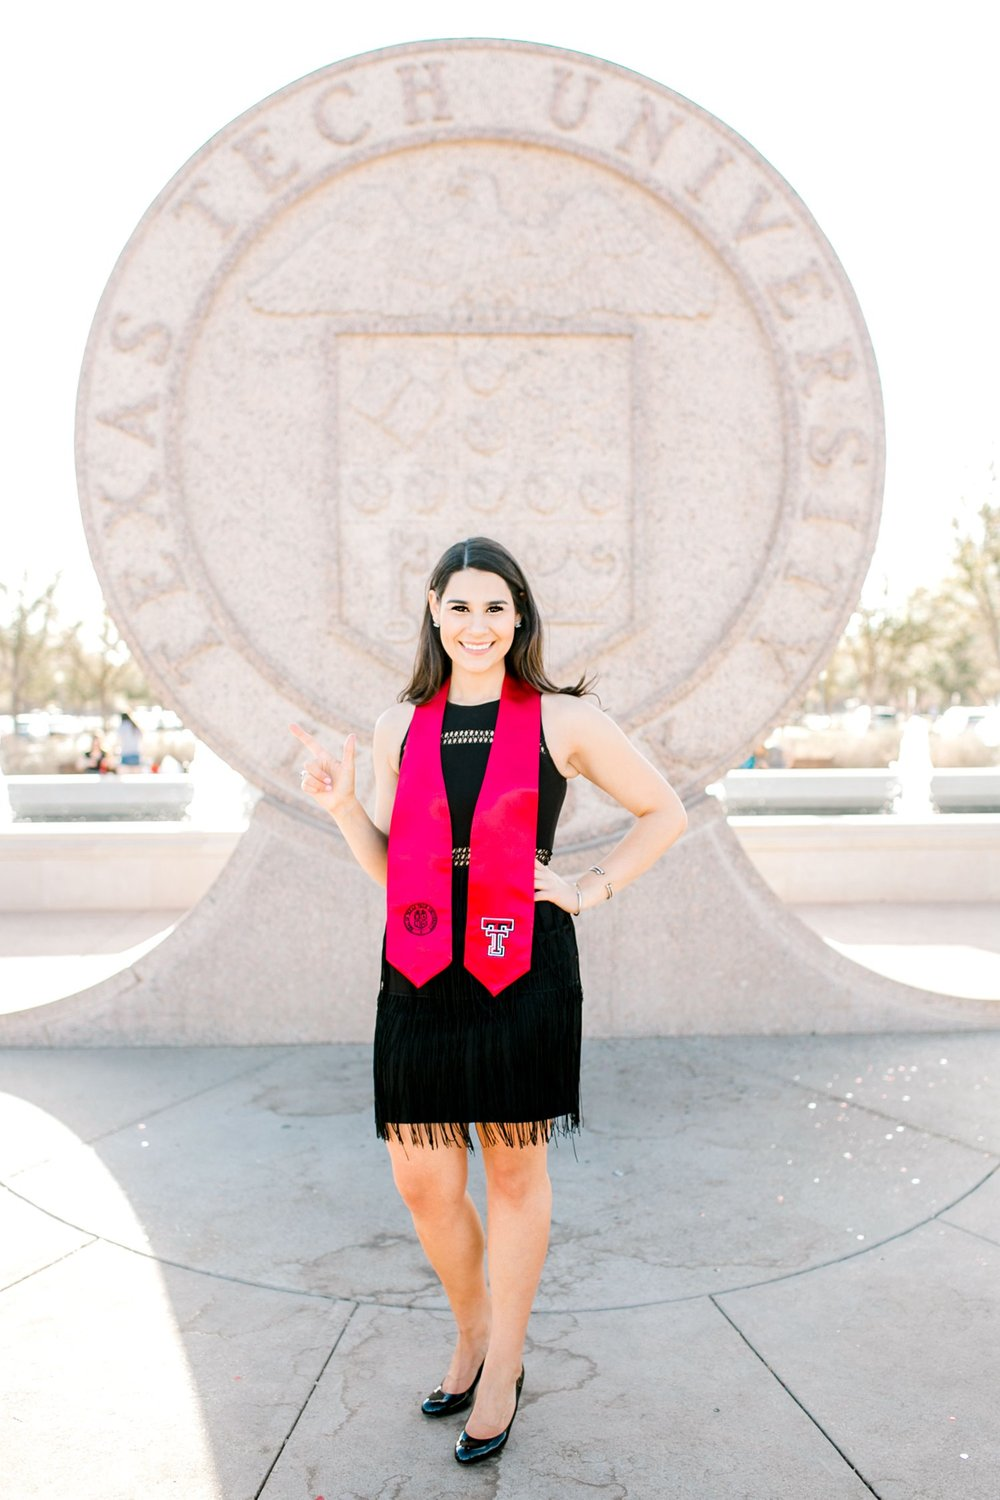 Anna-Becerra-Texas-Tech-University-lubbock-senior-photographer0010.jpg